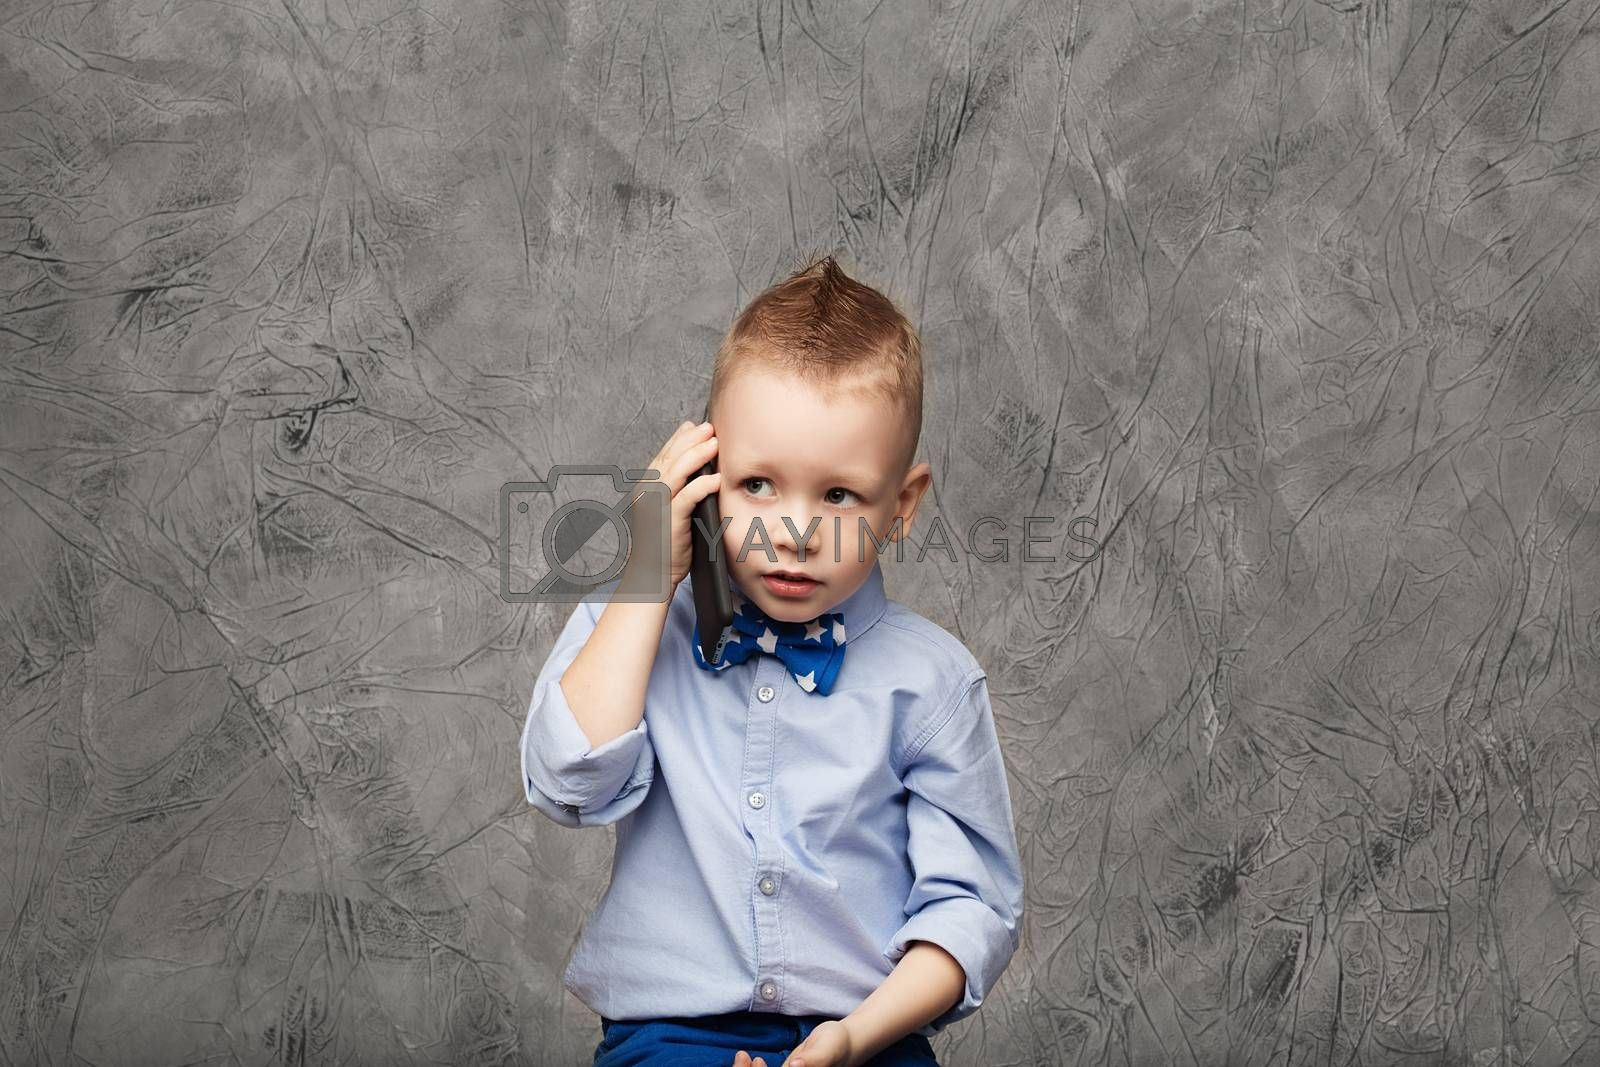 Portrait of a cute little boy in blue shirt and bow tie with mobile phone against gray textural background in studio. Business concept. Little boy businessman.